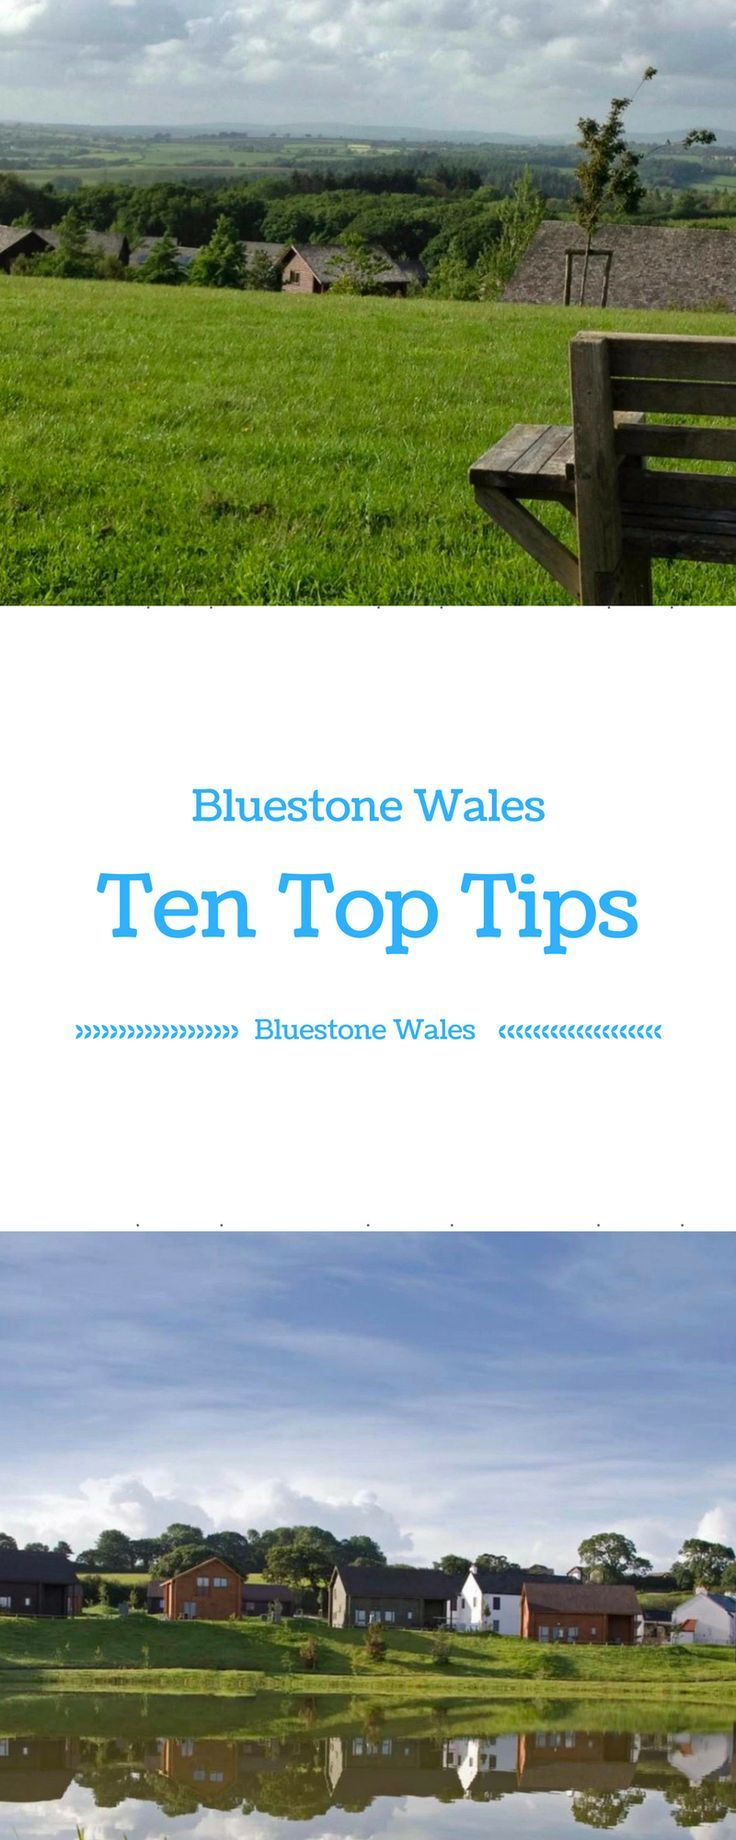 Bluestone Wales Ten Top Tips www.minitravellers.co.uk Visiting Bluestone in Wales soon? Here are 10 Top Tips!  1.Book a buggy if you�re not up for walking everywhere. Not only are they fun and a novel way to get around – although nowhere is very far (with